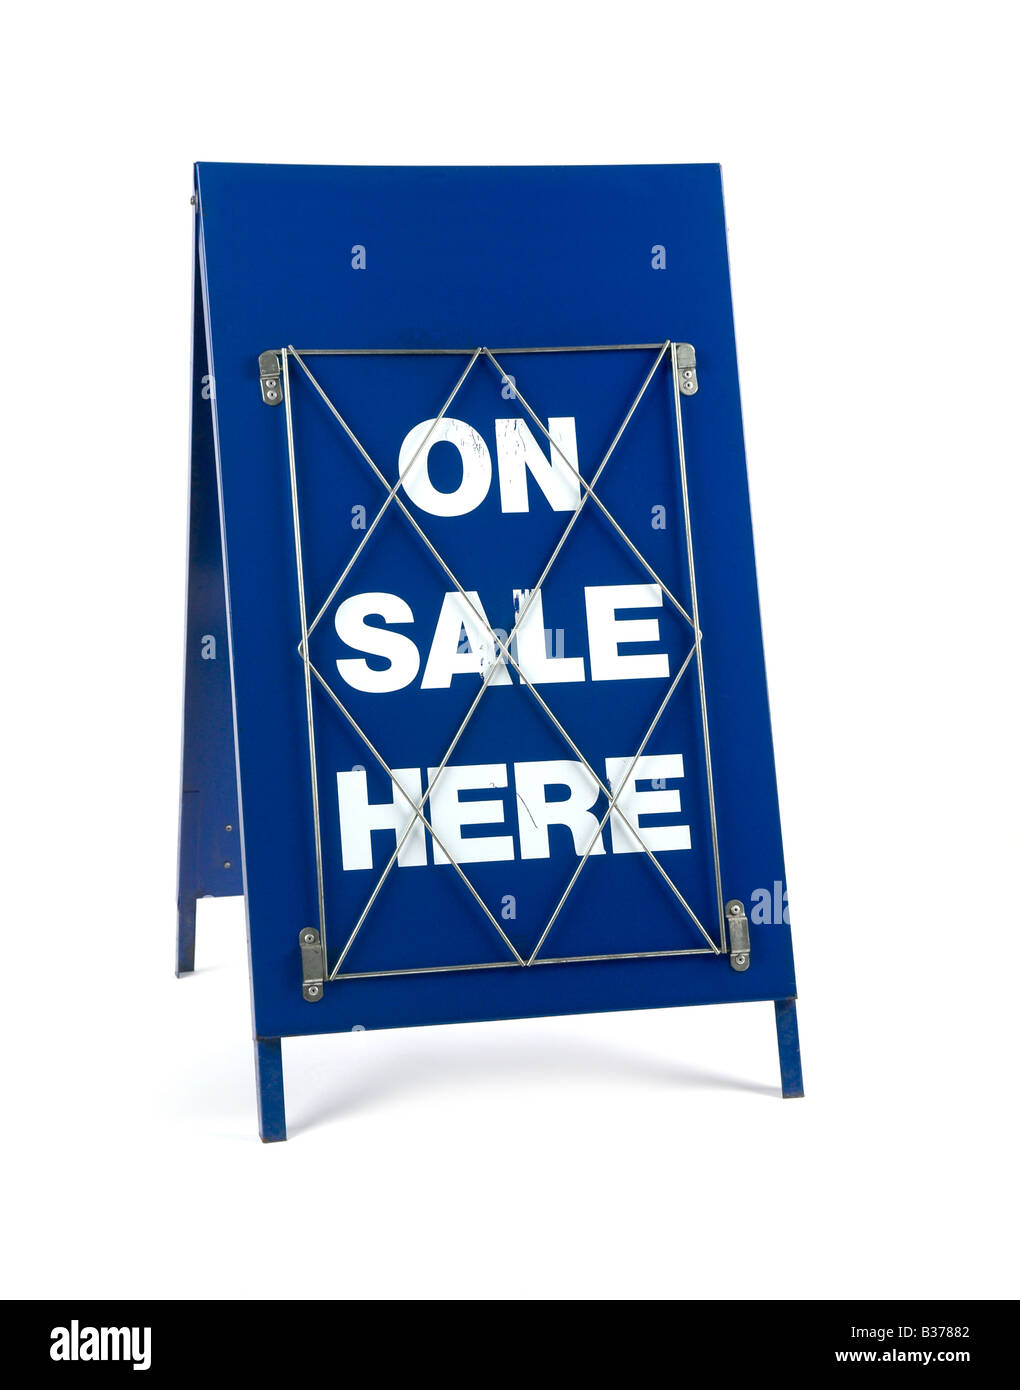 NEWS AGENTS BANNER HEADLINE 'A' BOARD ON SALE HERE - Stock Image